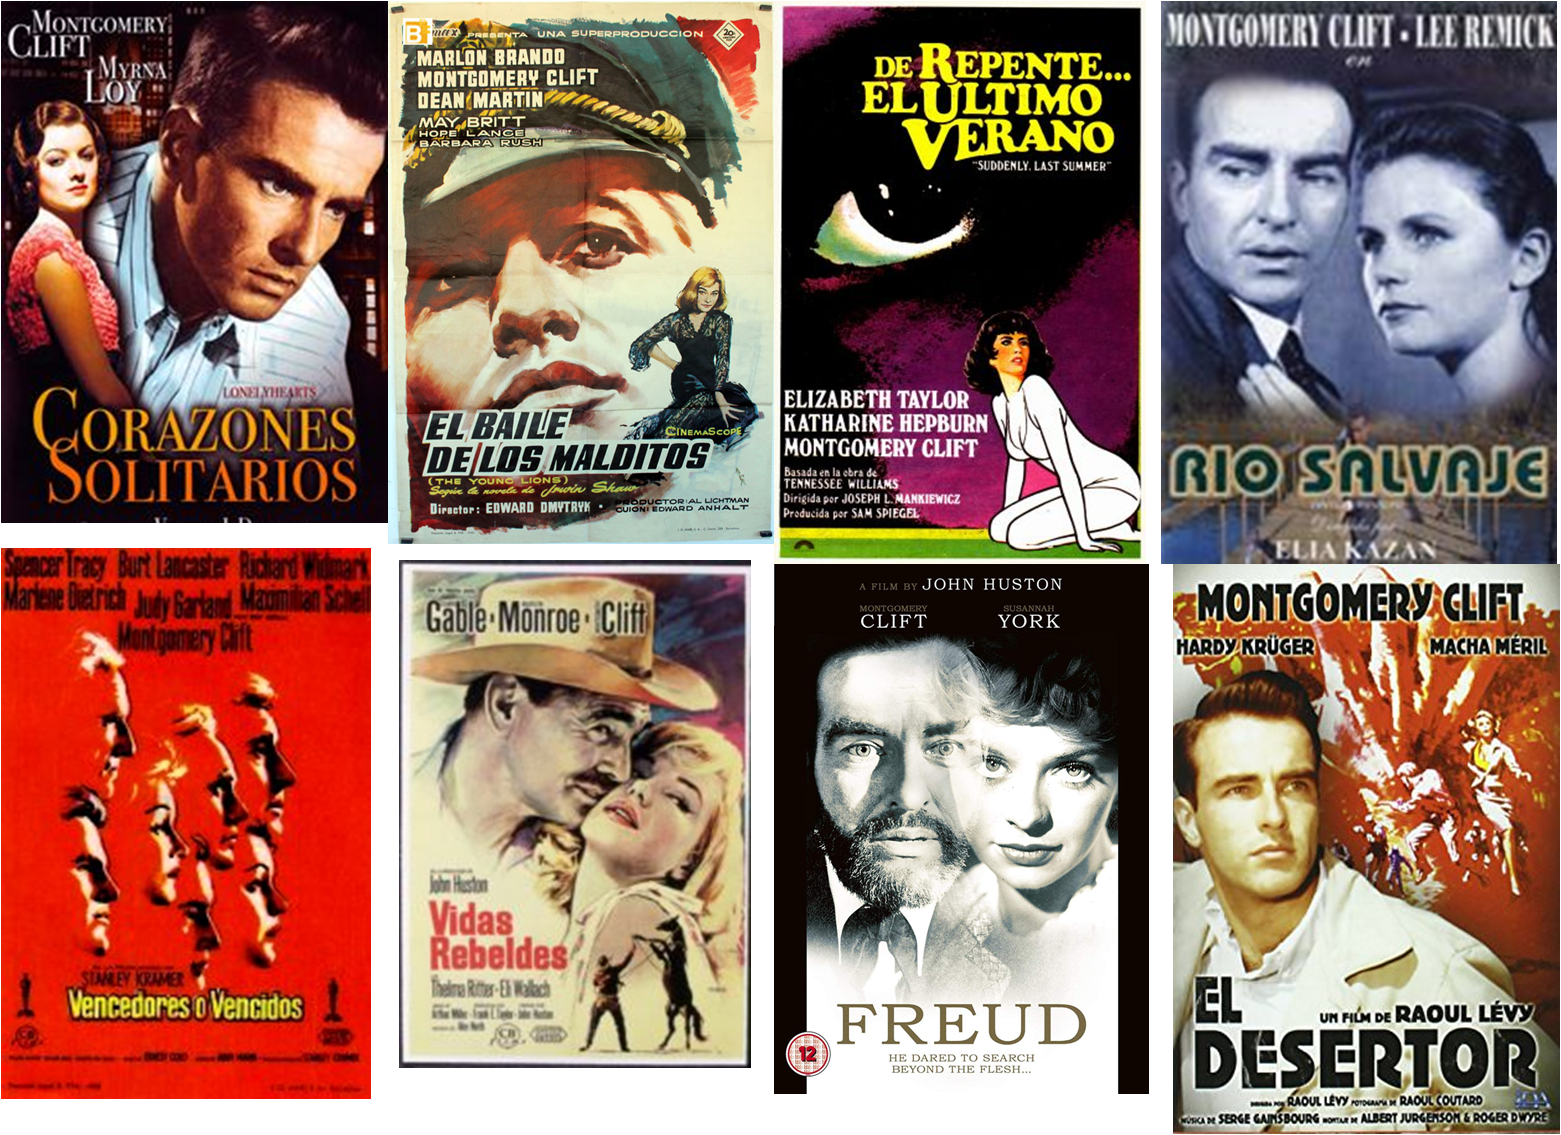 Montgomery Clift afiches 2